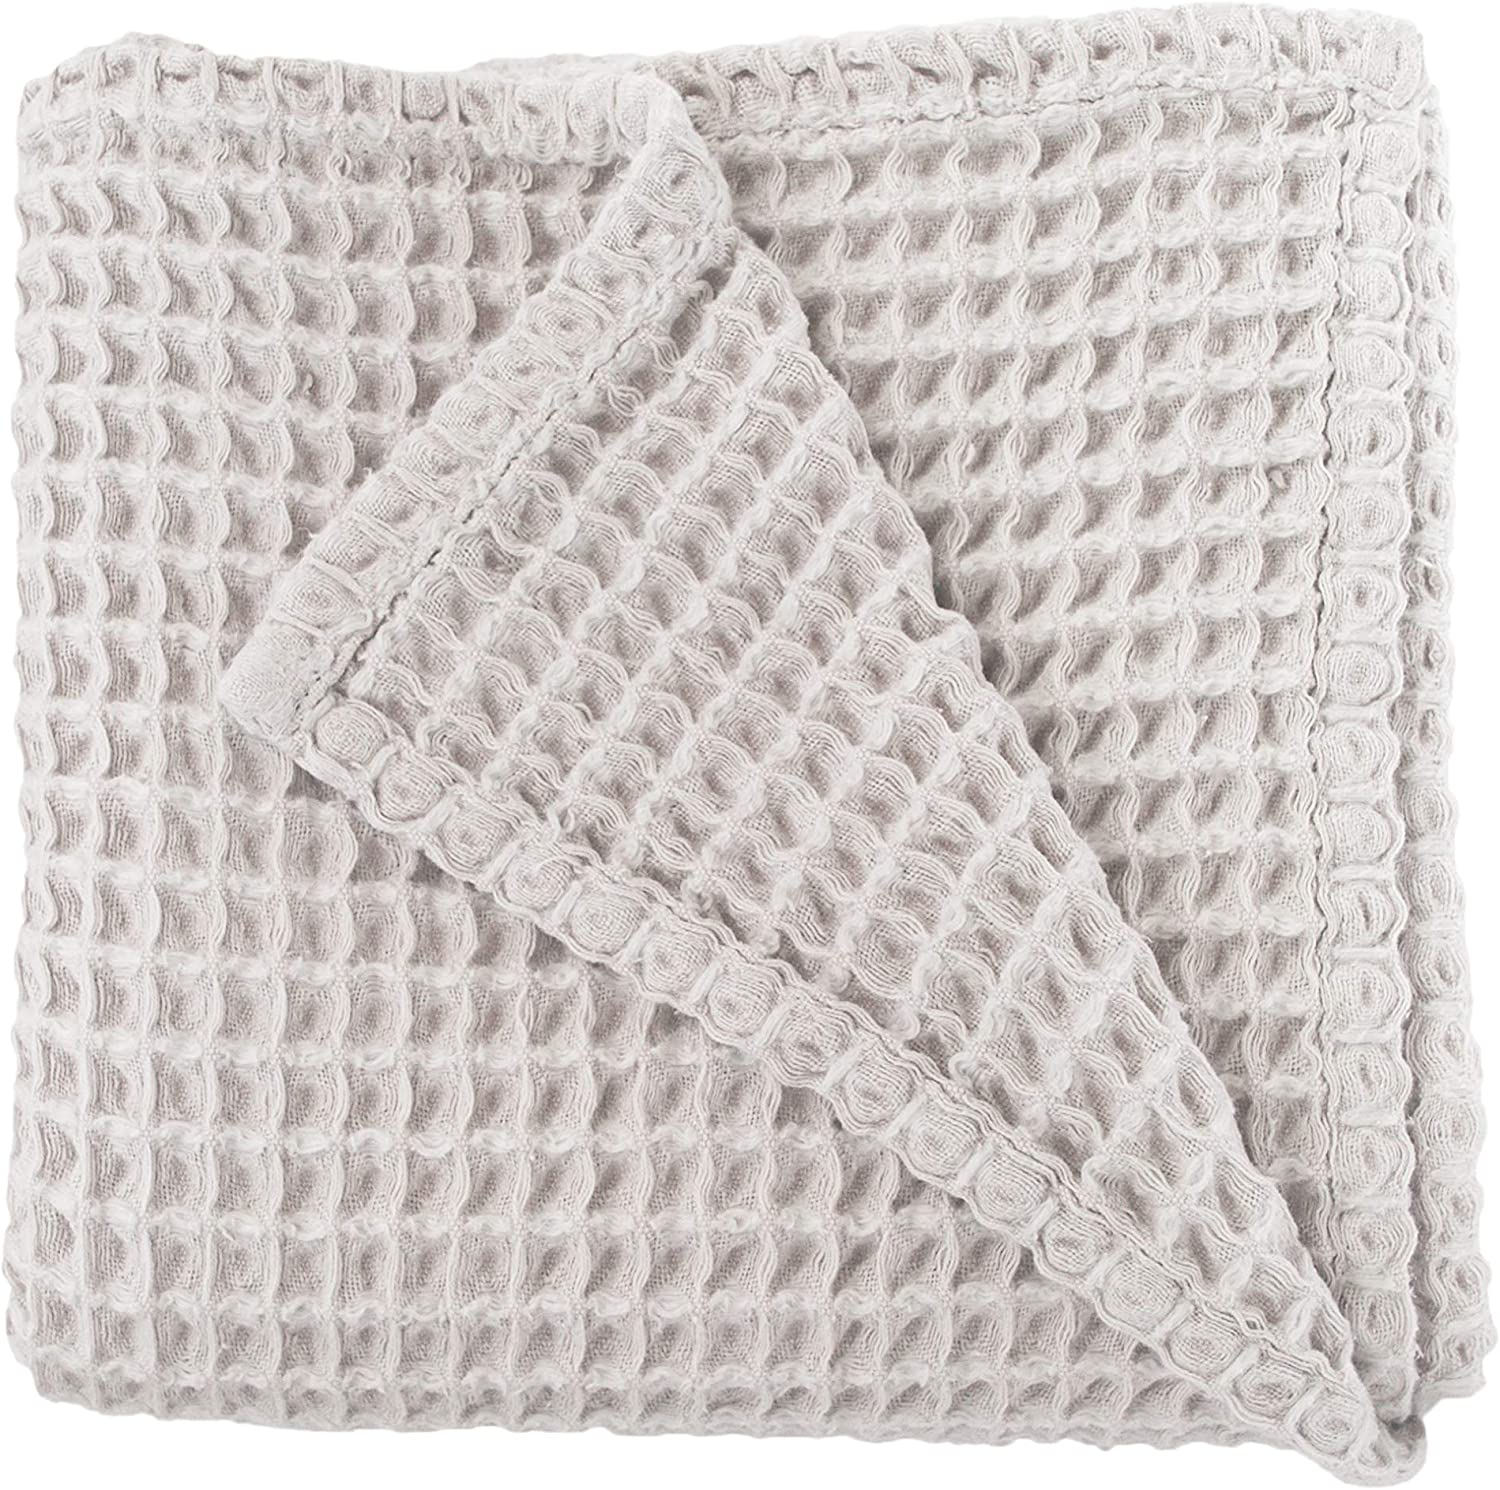 Cloud Blanket in Light Grey - Made from Soft and Lofty Waffle Gauze - 100% Cotton - 36  x 40  - Baby Girl Gift